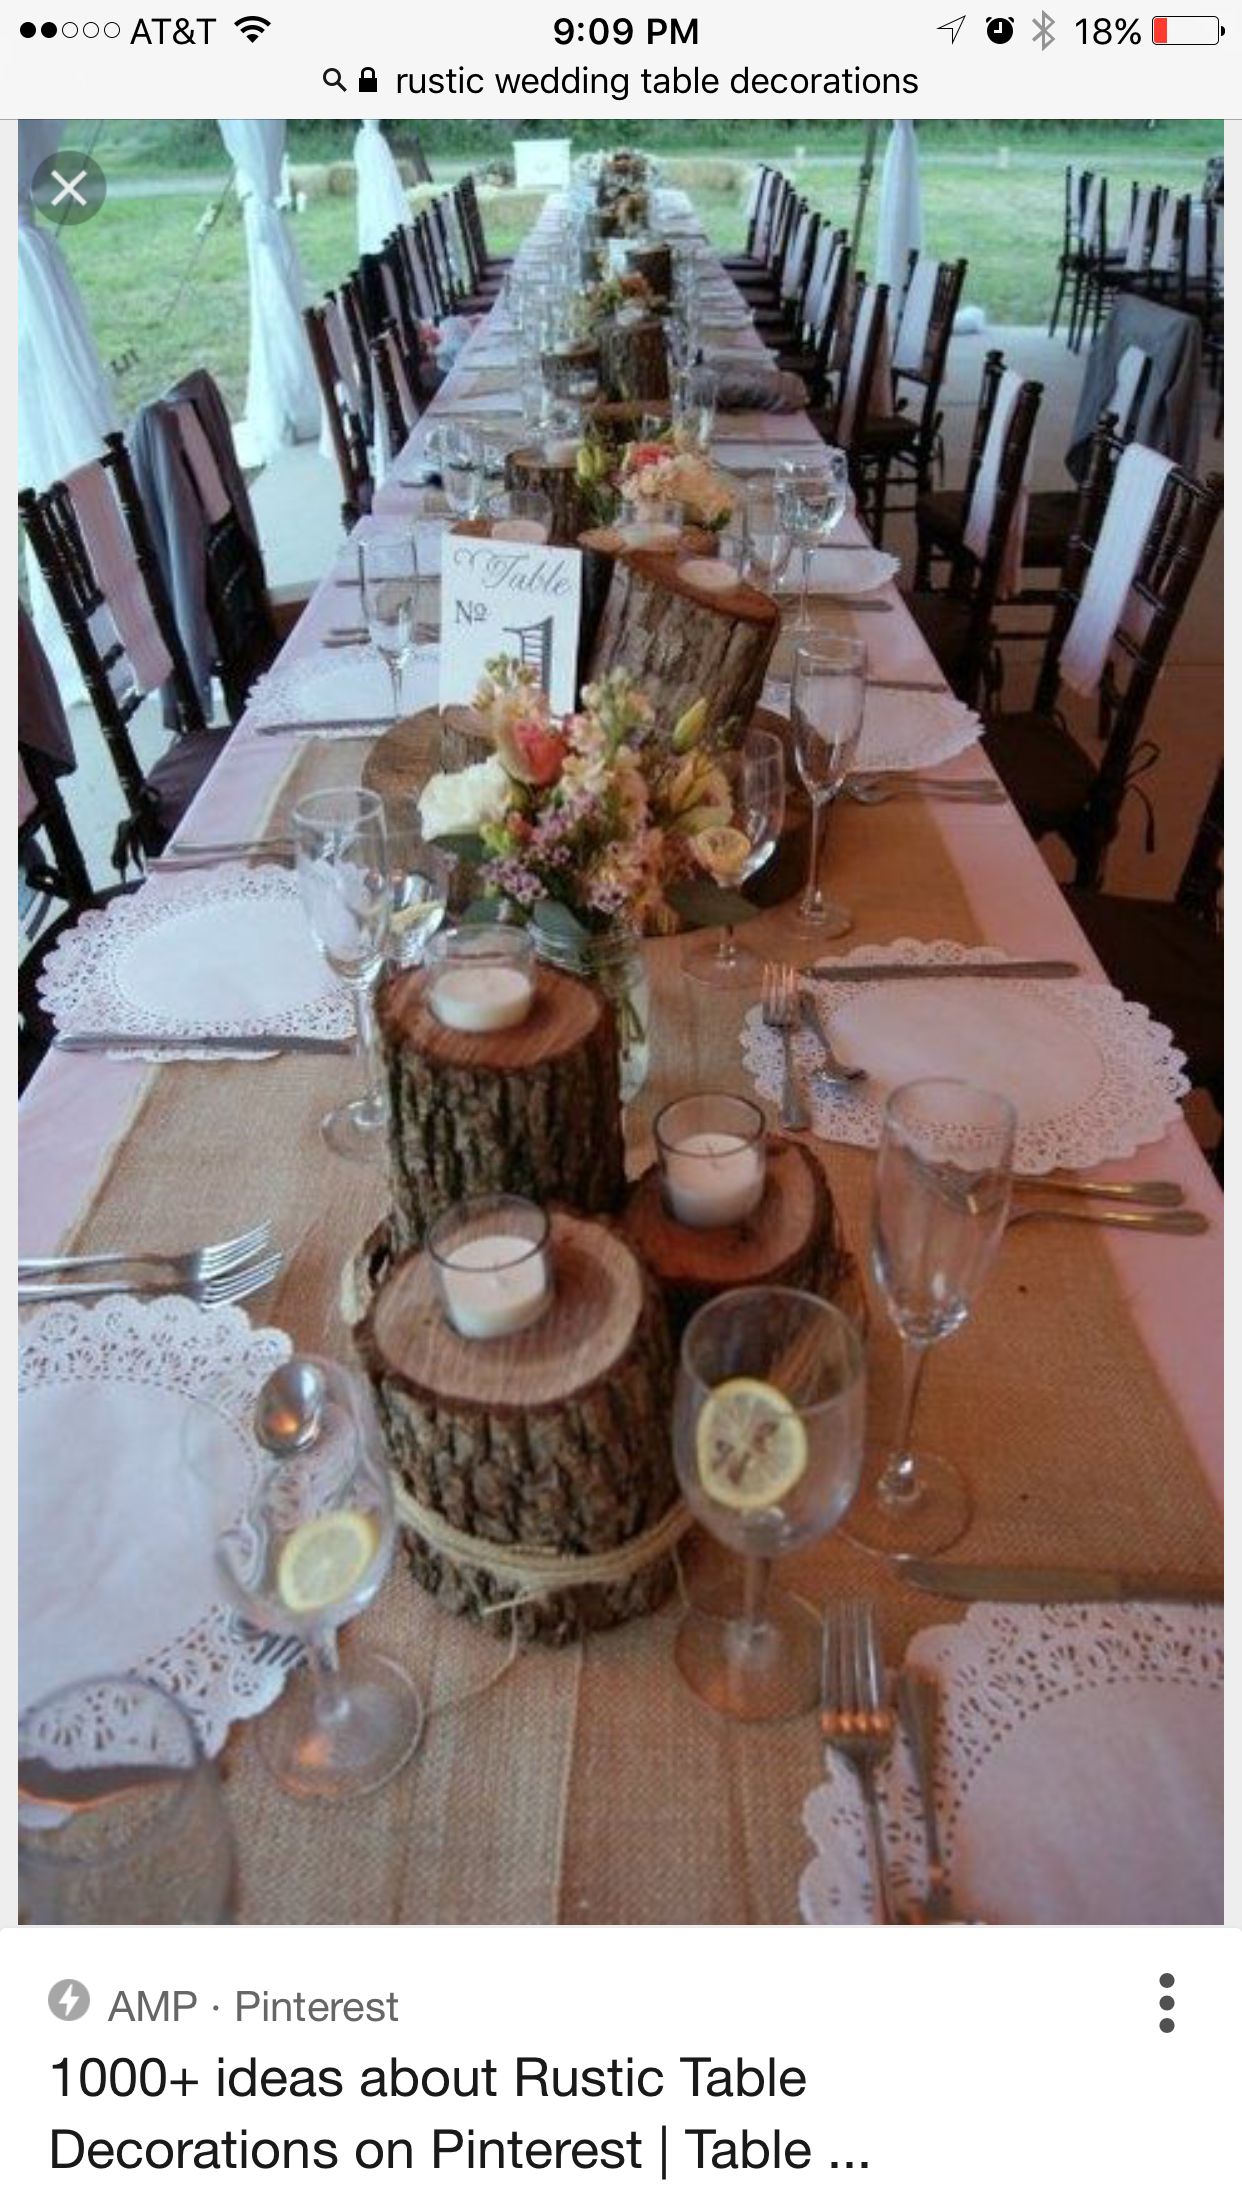 Lord of the Rings / Hobbit Wedding: Decoration: rustic head table  decoration ideas, centerpieces, candles, wood